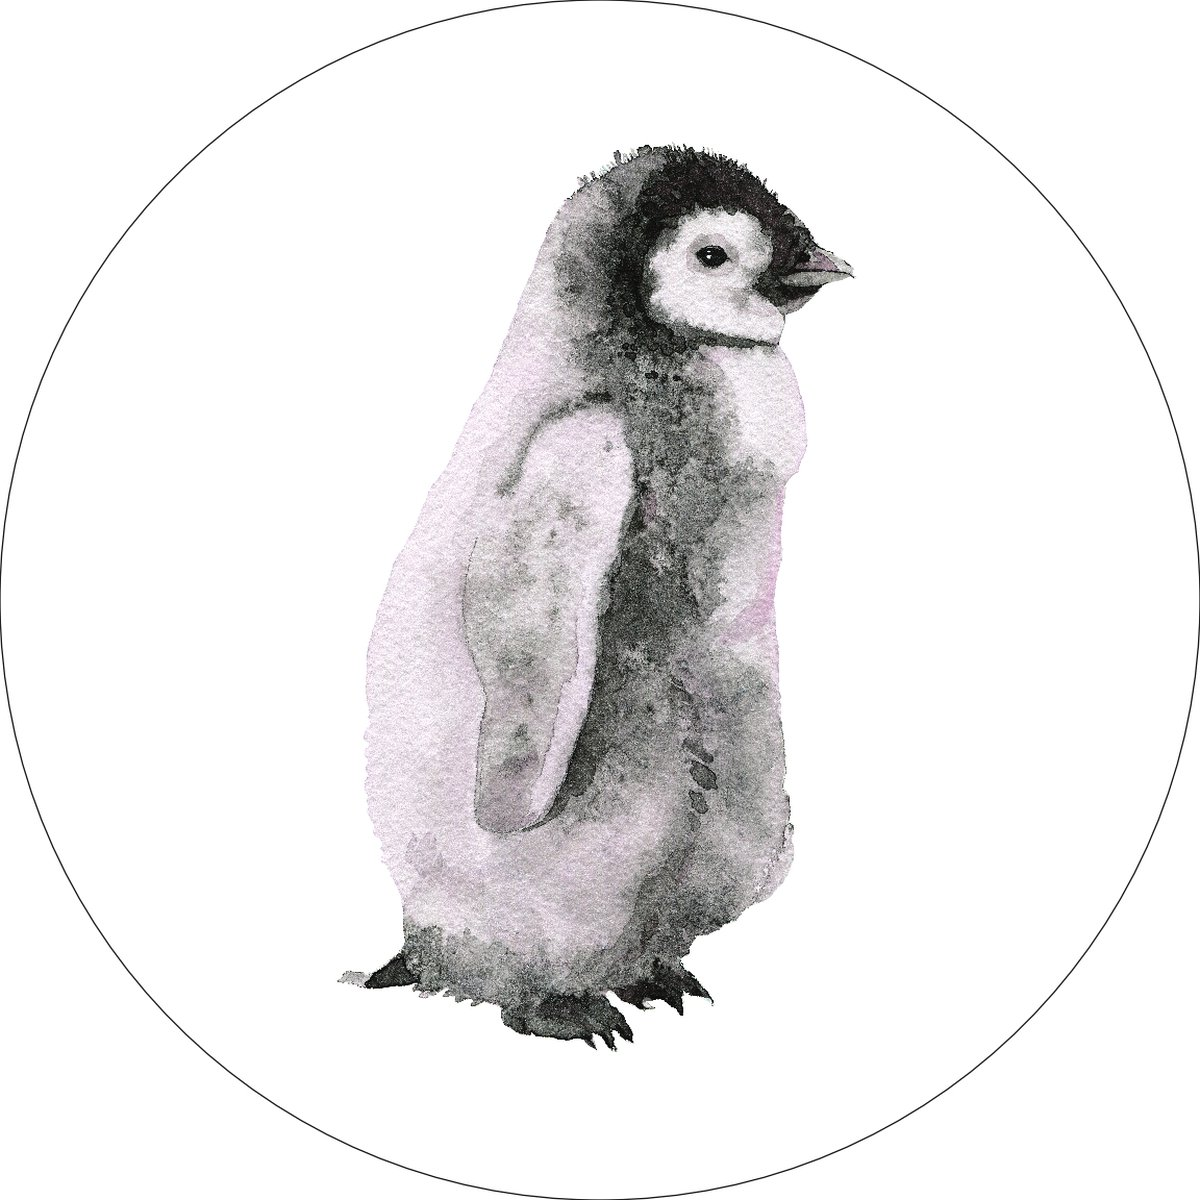 Penguin Home Wall Shelf Decor Animal Decorations Watercolor Round Sign - 12 Inch, Plastic